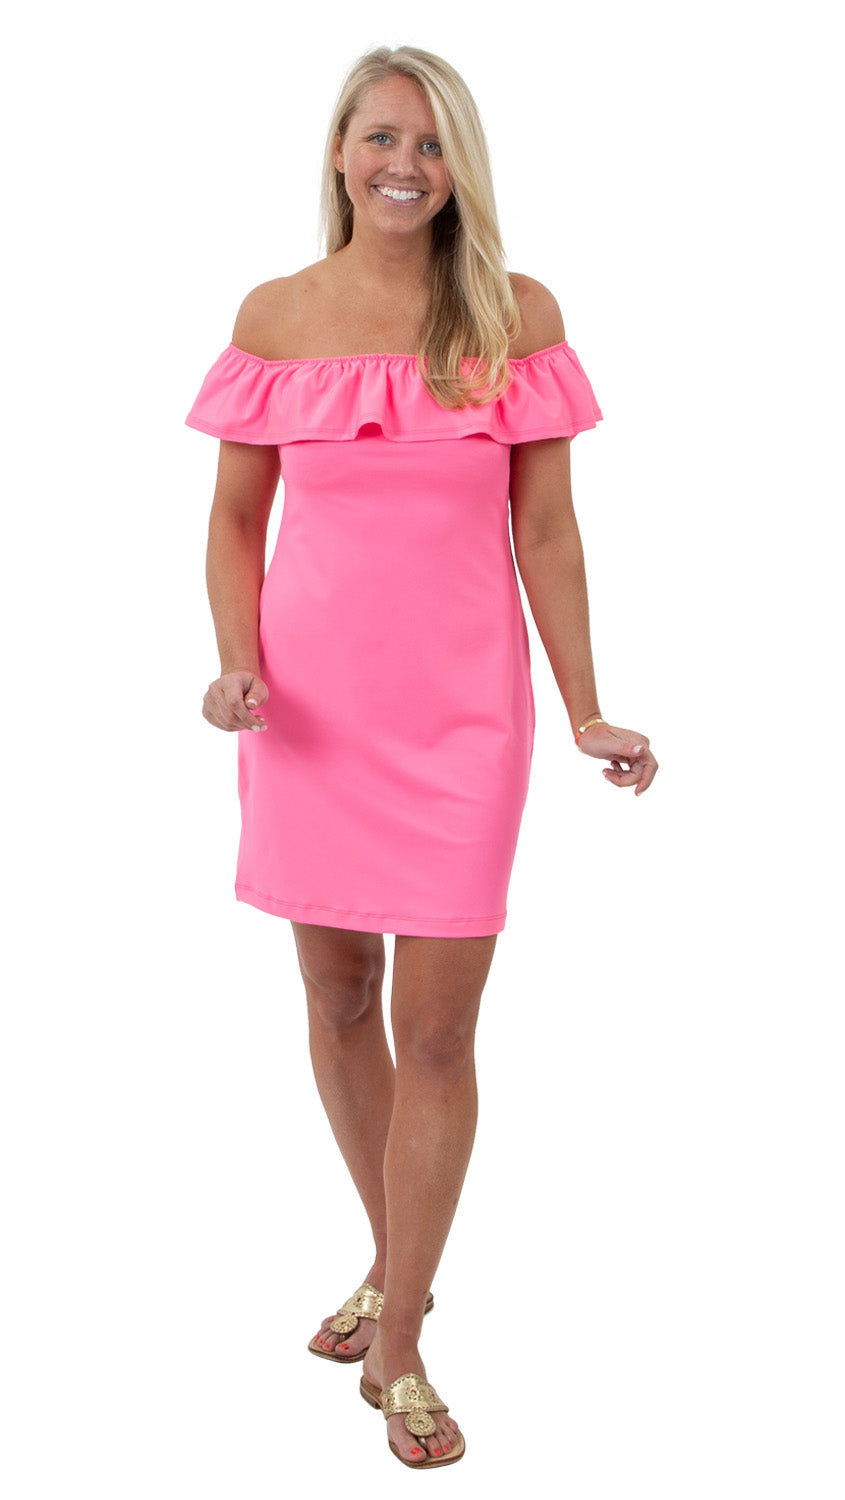 Shoreline Dress - Solid Neon Pink - FINAL SALE